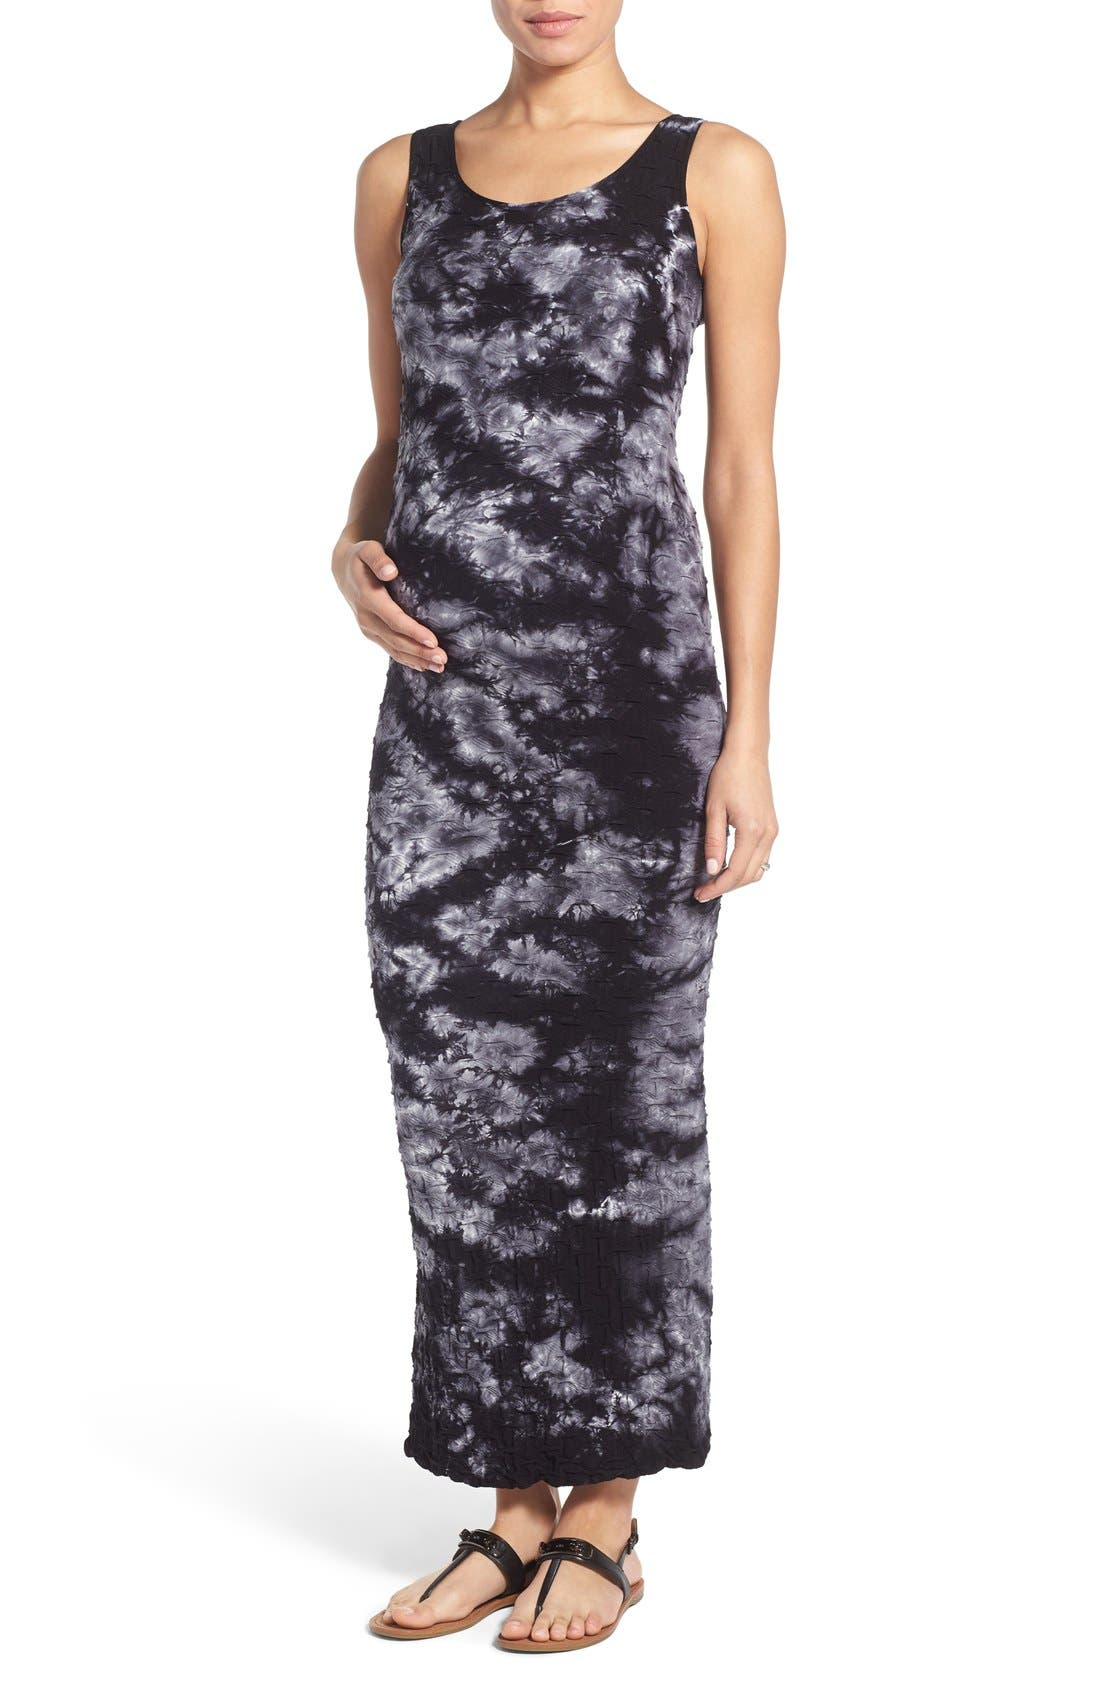 Tees by Tina 'Lattice' Tie Dye Textured Maternity Maxi Dress